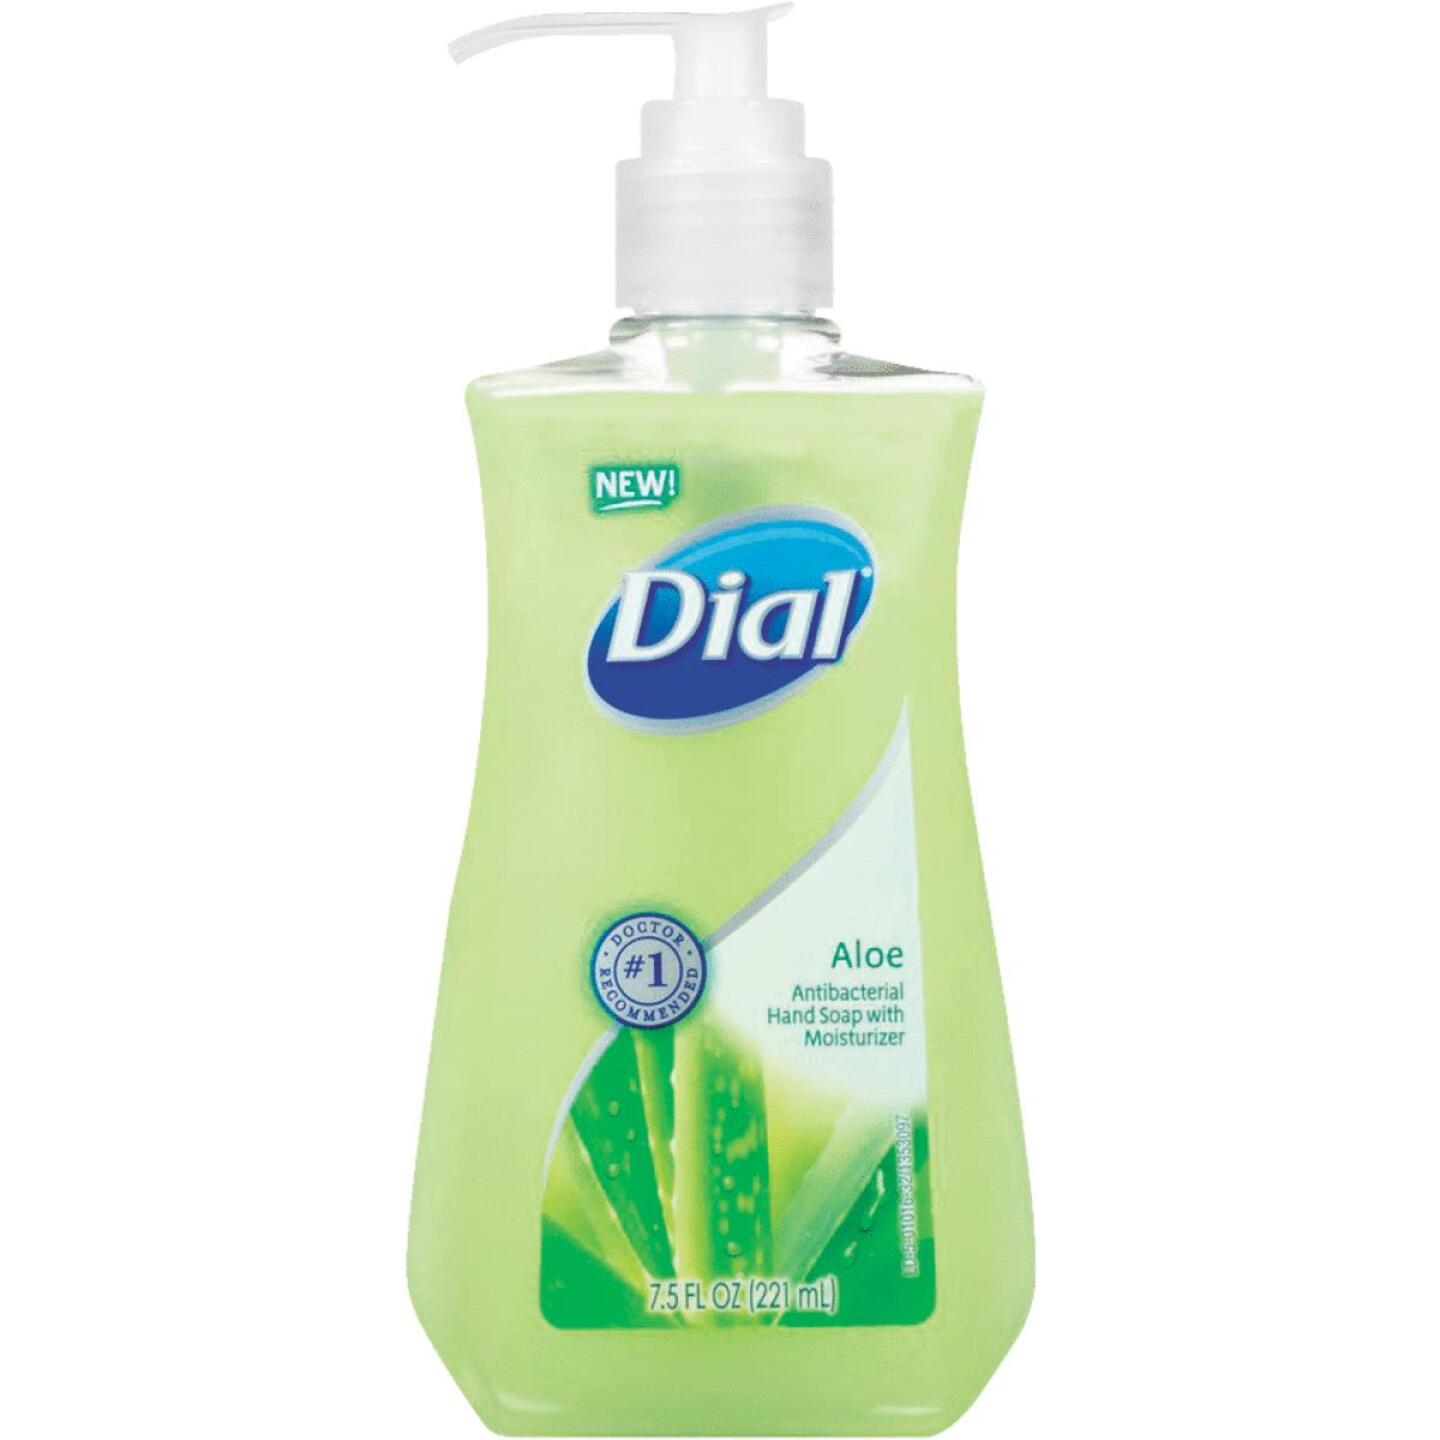 Dial Aloe Antibacterial Liquid Hand Soap with Moisturizer Image 1